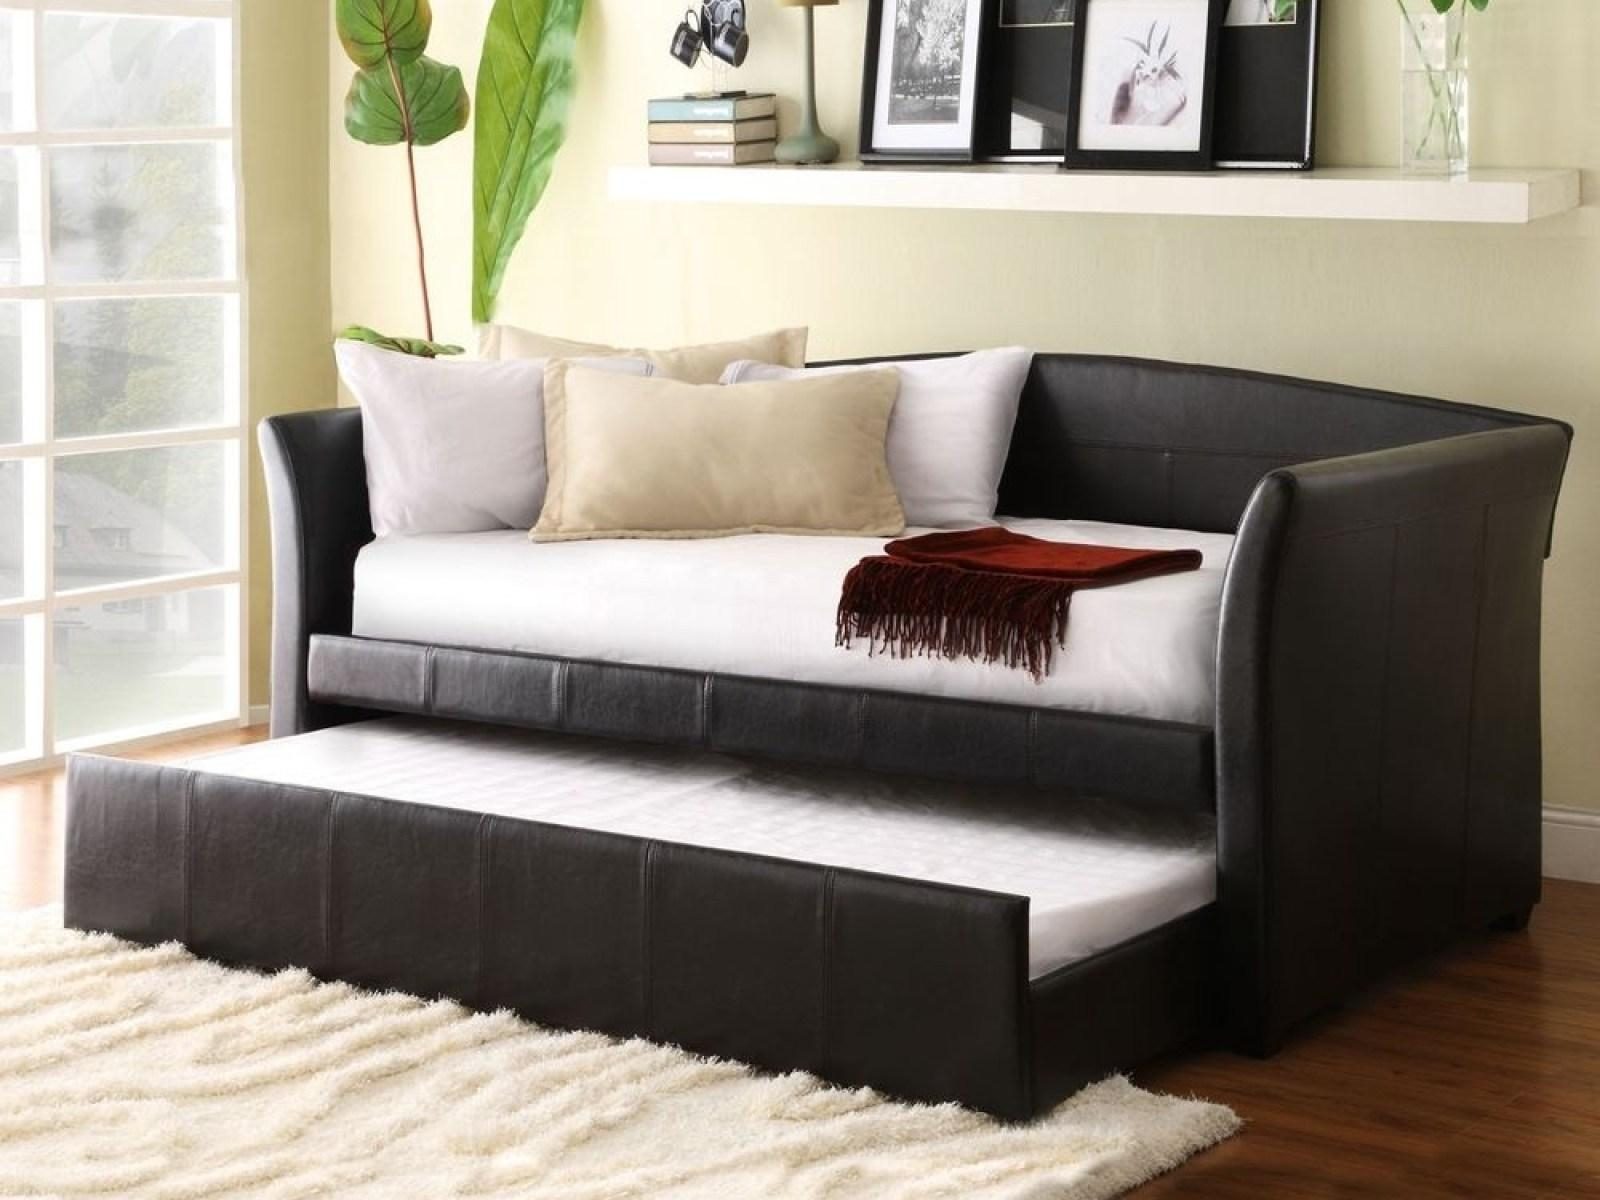 ☆▻ Sofa : 29 Awesome Sleeper Sofas For Small Spaces Magnificent With Awesome Sofa (View 10 of 20)